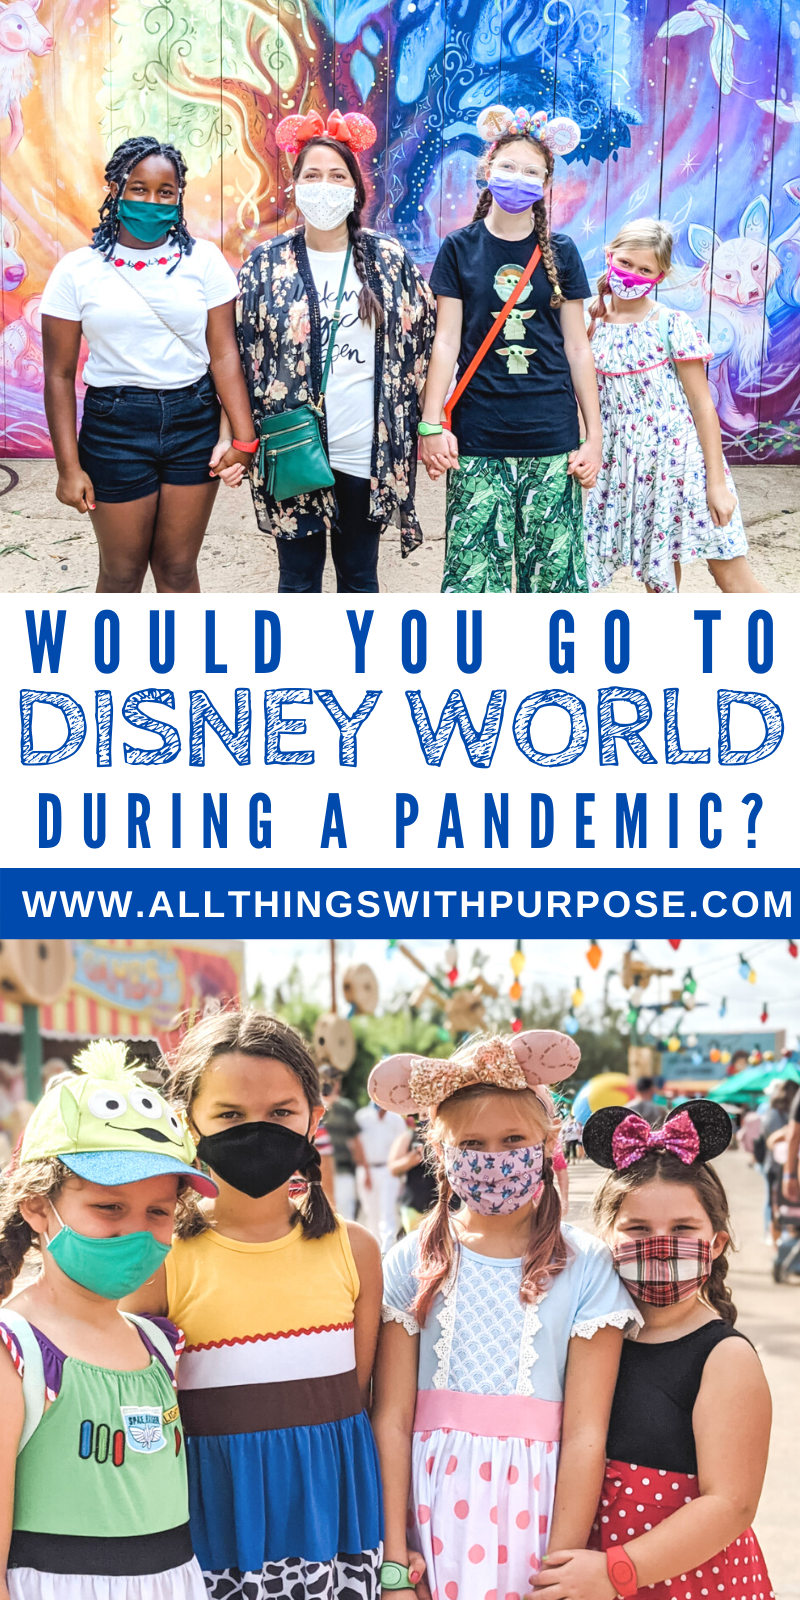 Should You Visit Disney World During the Pandemic? All Things with Purpose Sarah Lemp 23